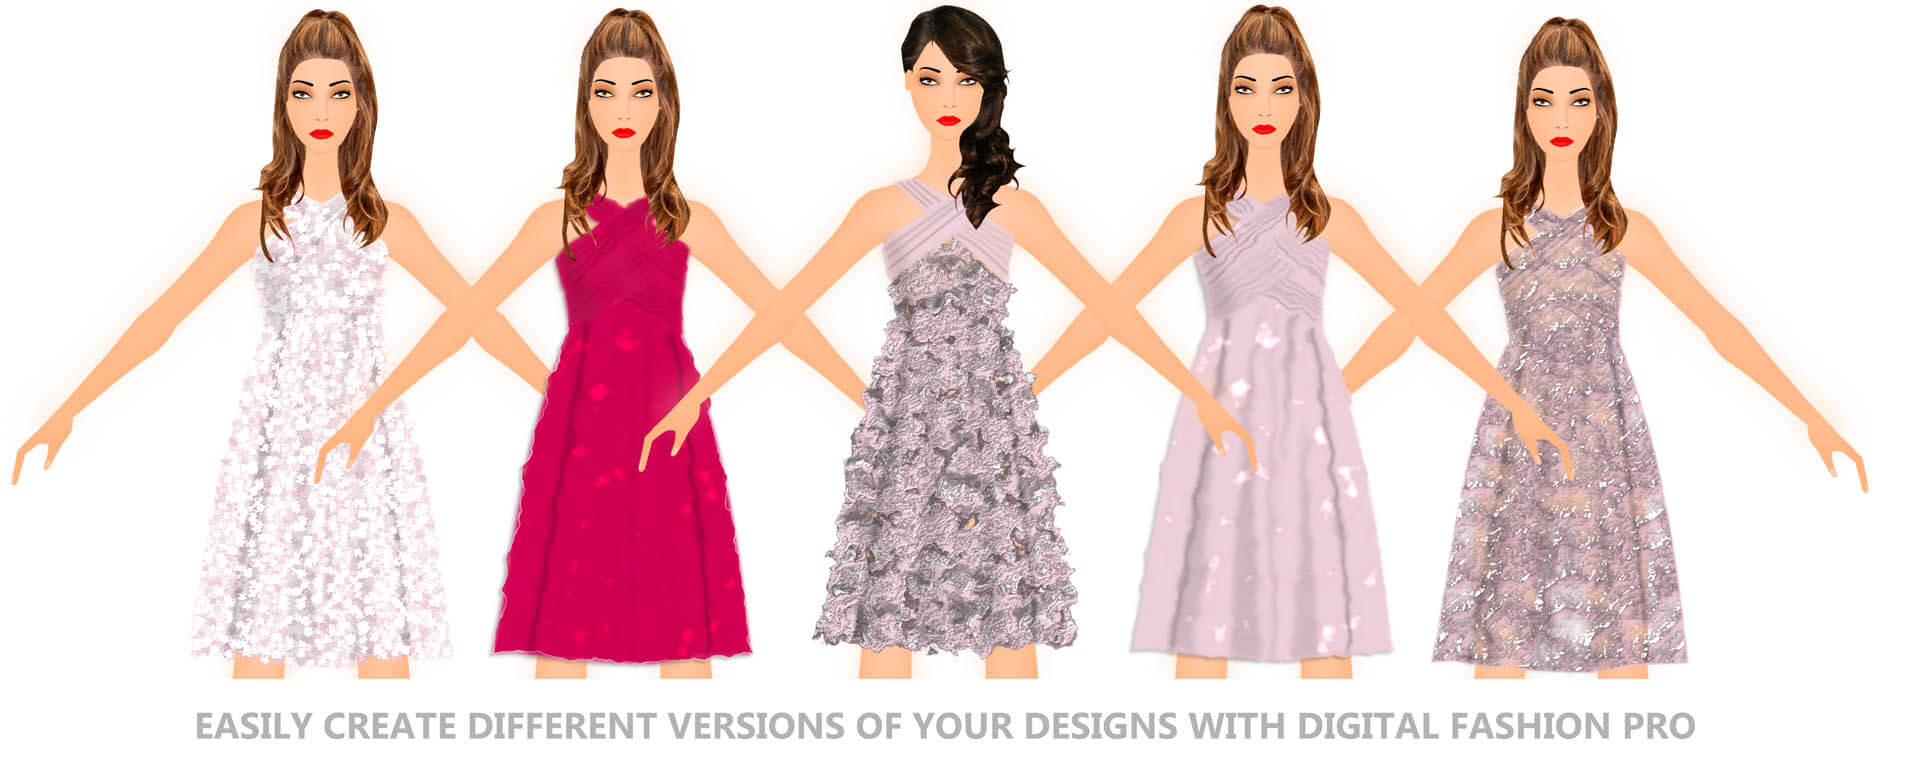 Designer Clothing Fashion Trends Design Software Start - designing clothes app - digital fashion pro